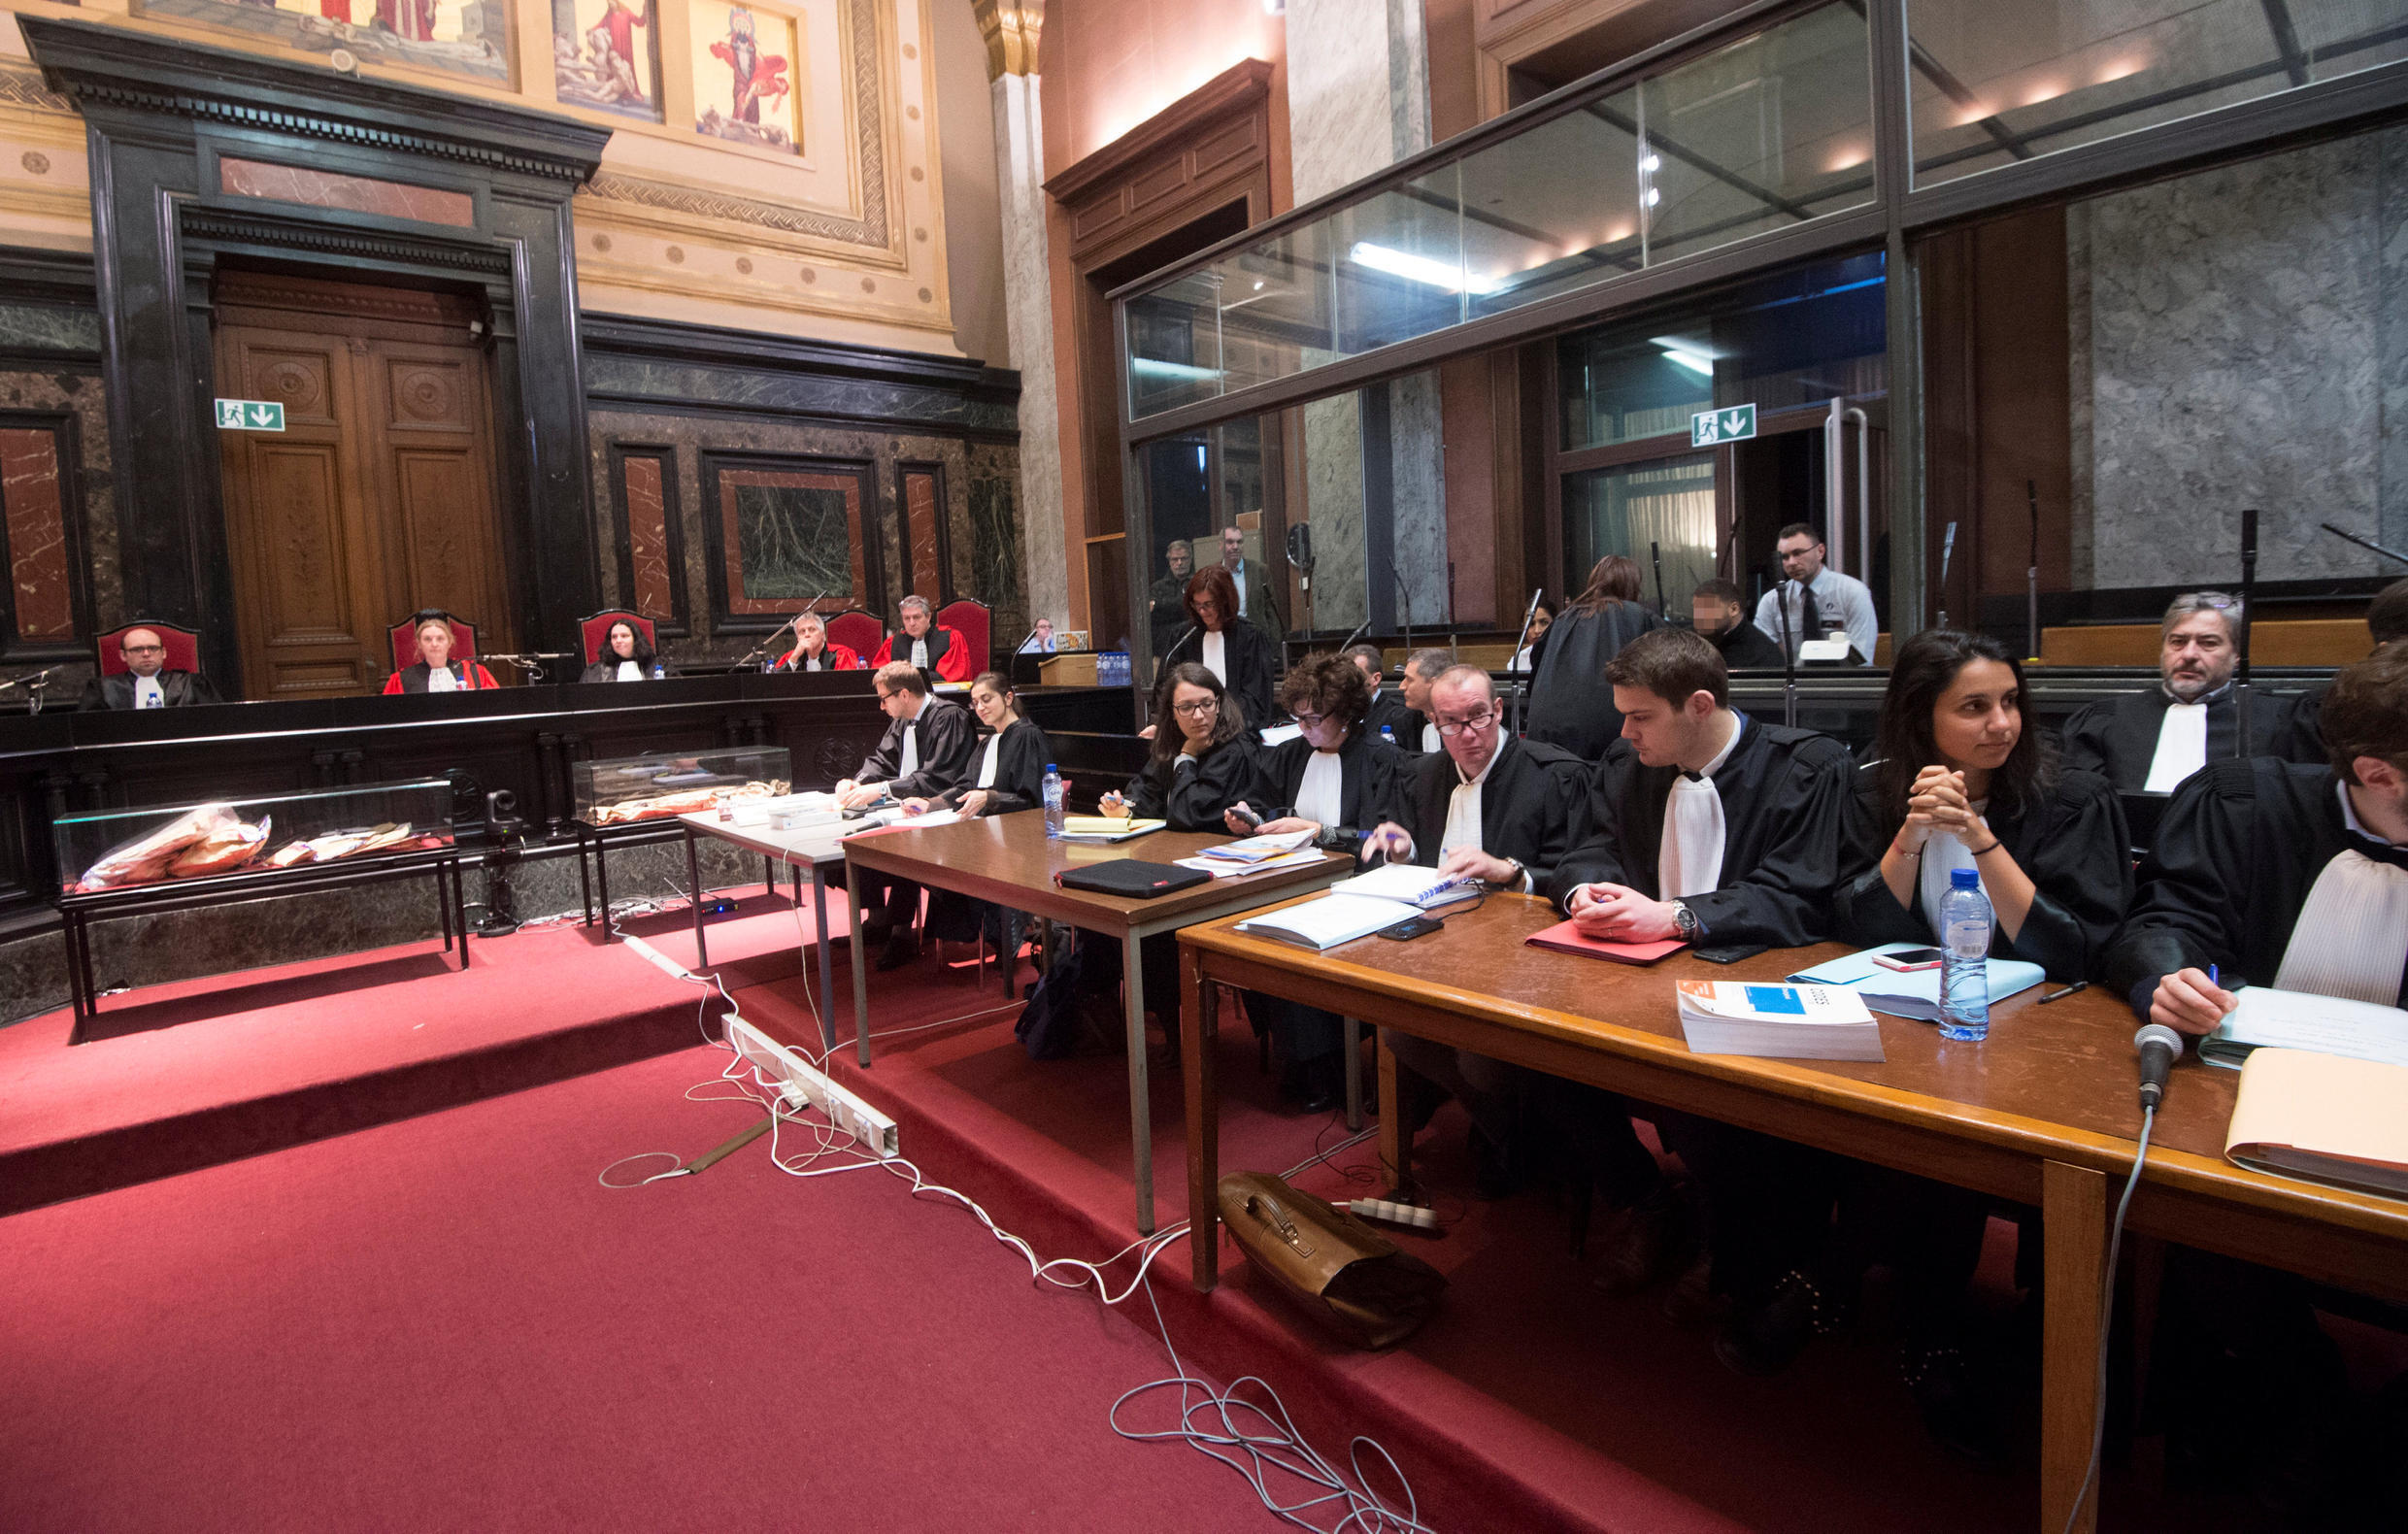 The court room in Brussels on the opening day of Nemmouche's trial, 10 January 2019.